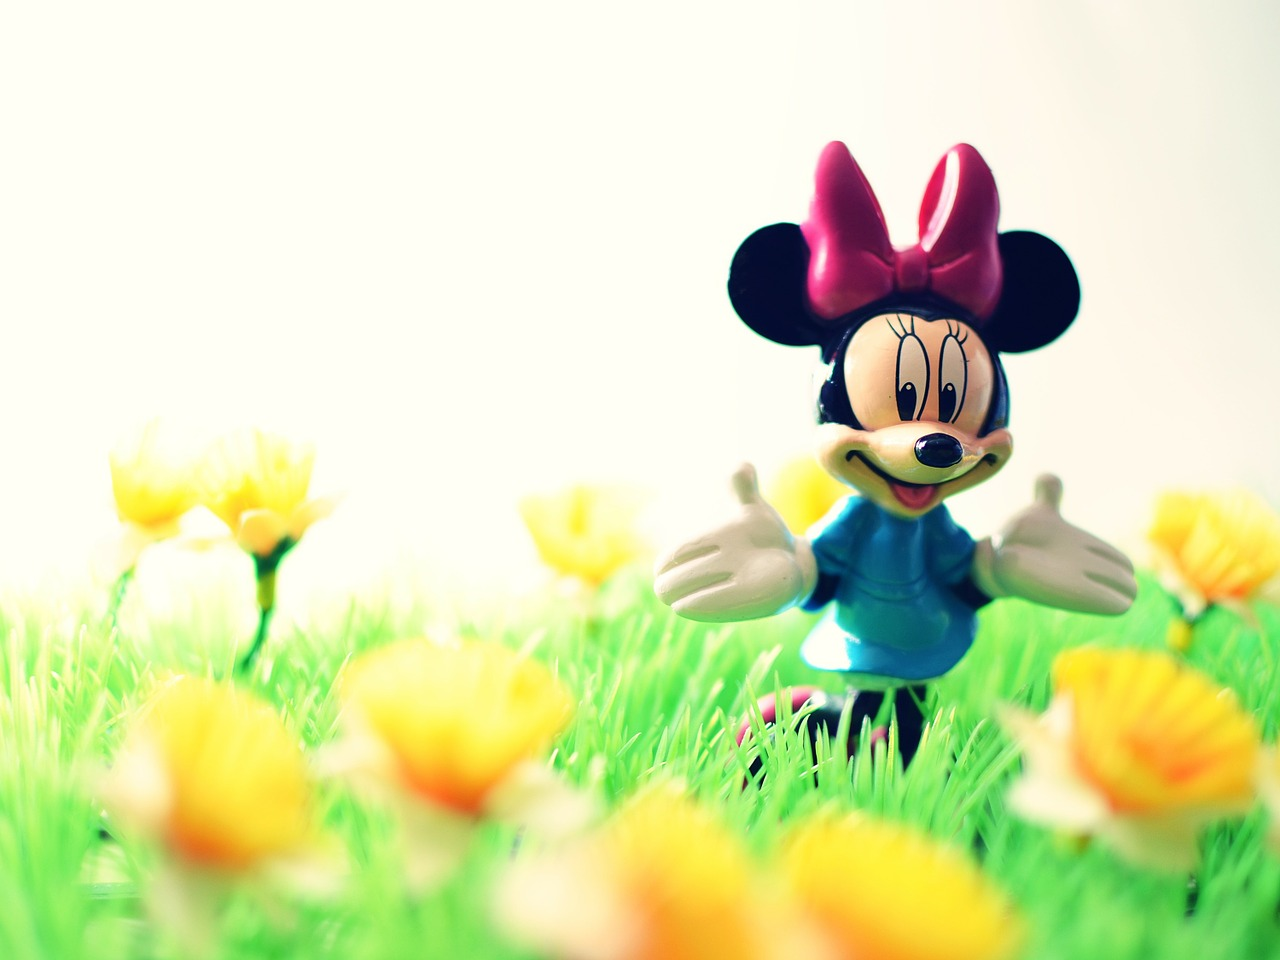 micky mouse toy happy free photo